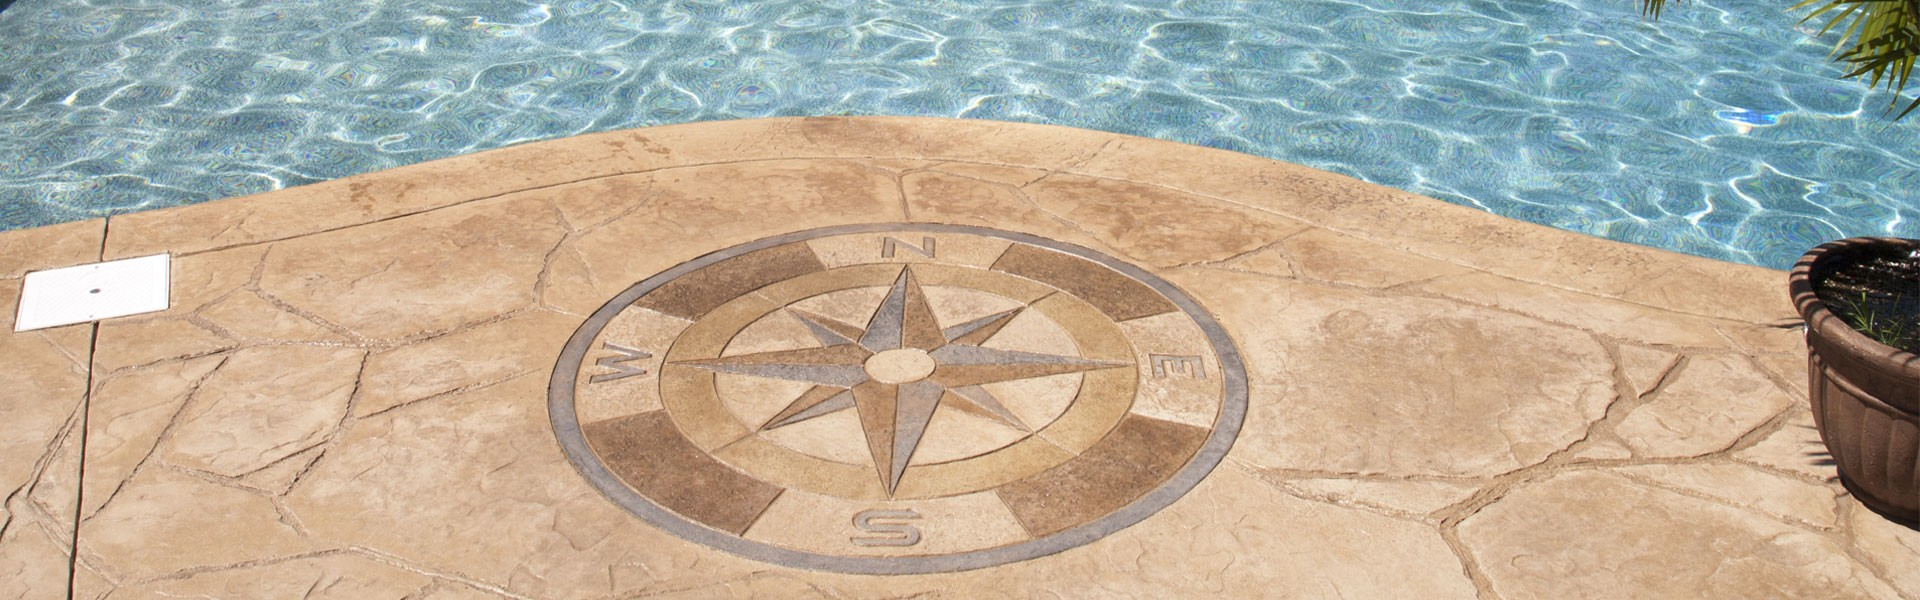 Compass made out of concrete near a pool.